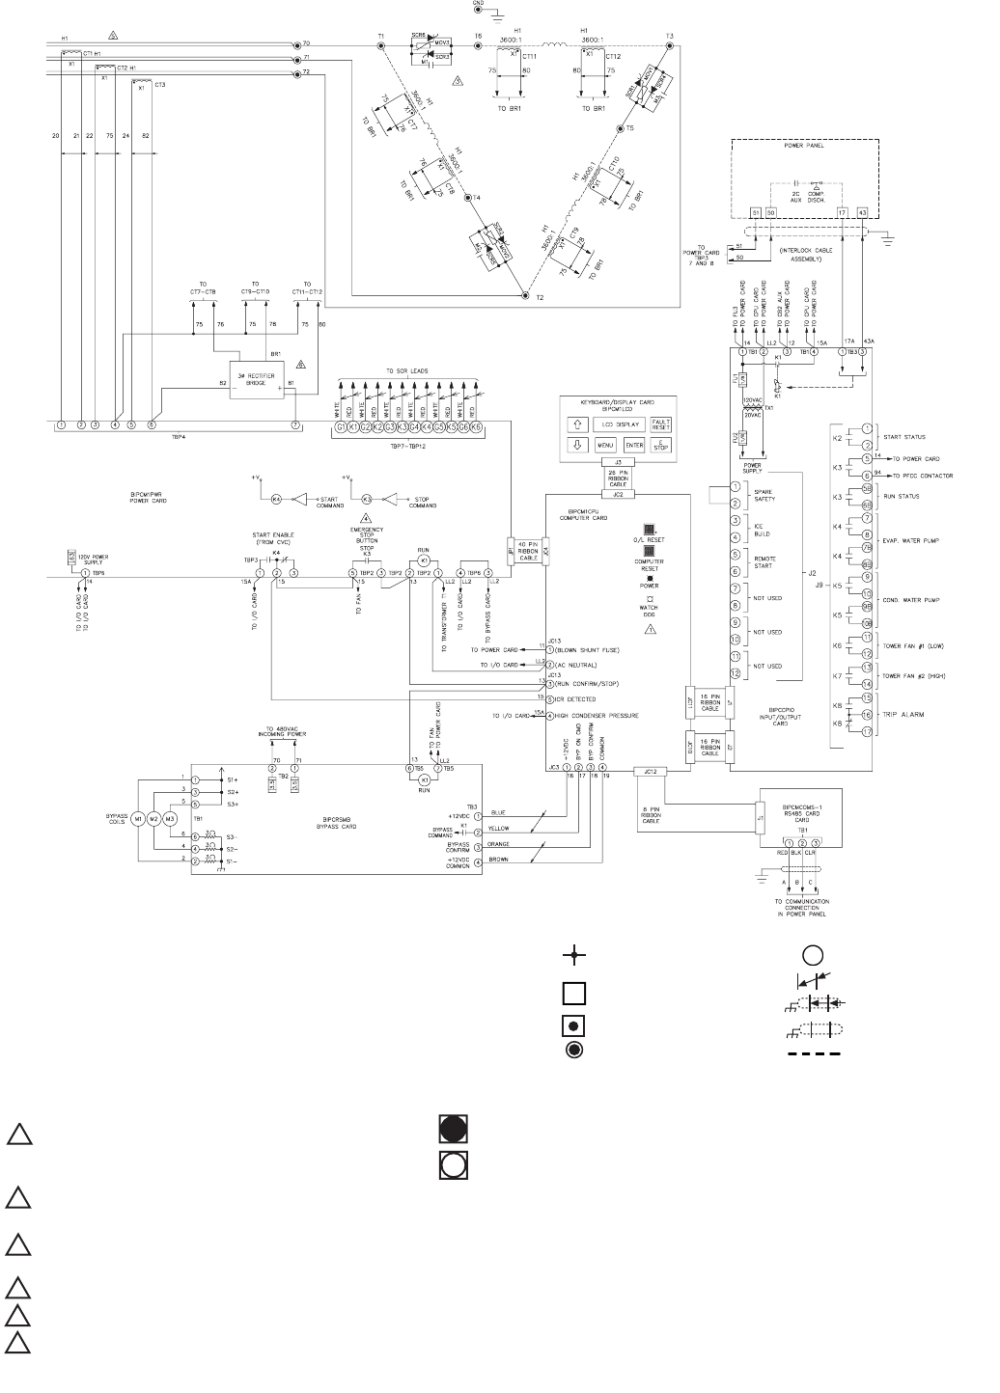 medium resolution of carrier 19xr xrv fig 53 benshaw inc solid state unit mounted starter wiring schematic low voltage cont